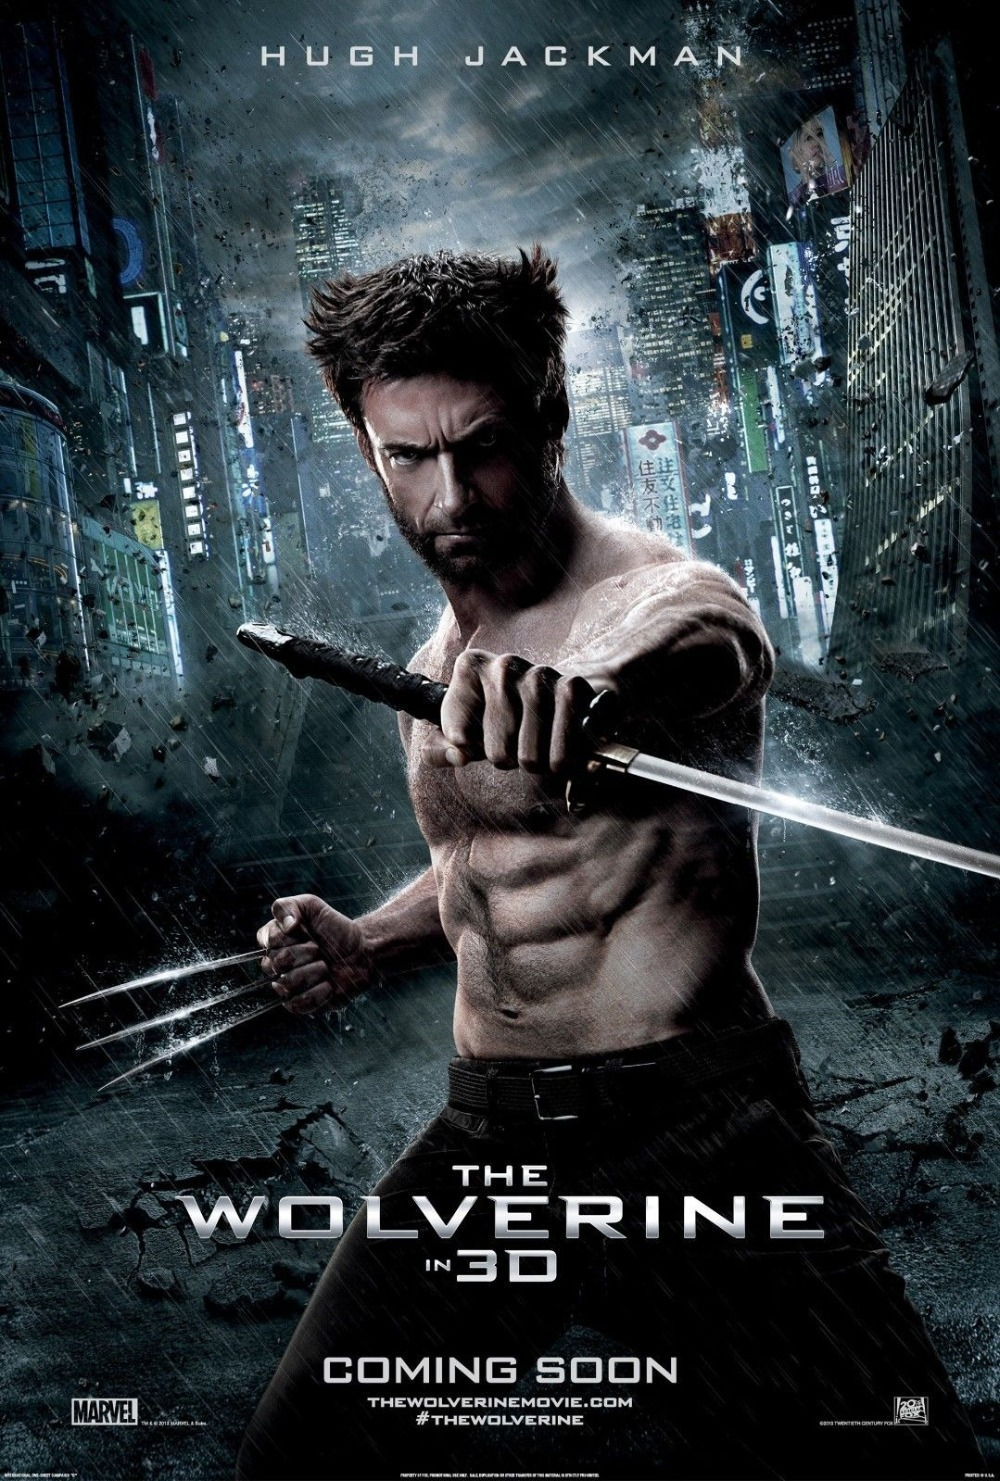 The Wolverine (2013) Movie Hugh Jackman SILK POSTER Wall painting 24x36inch image